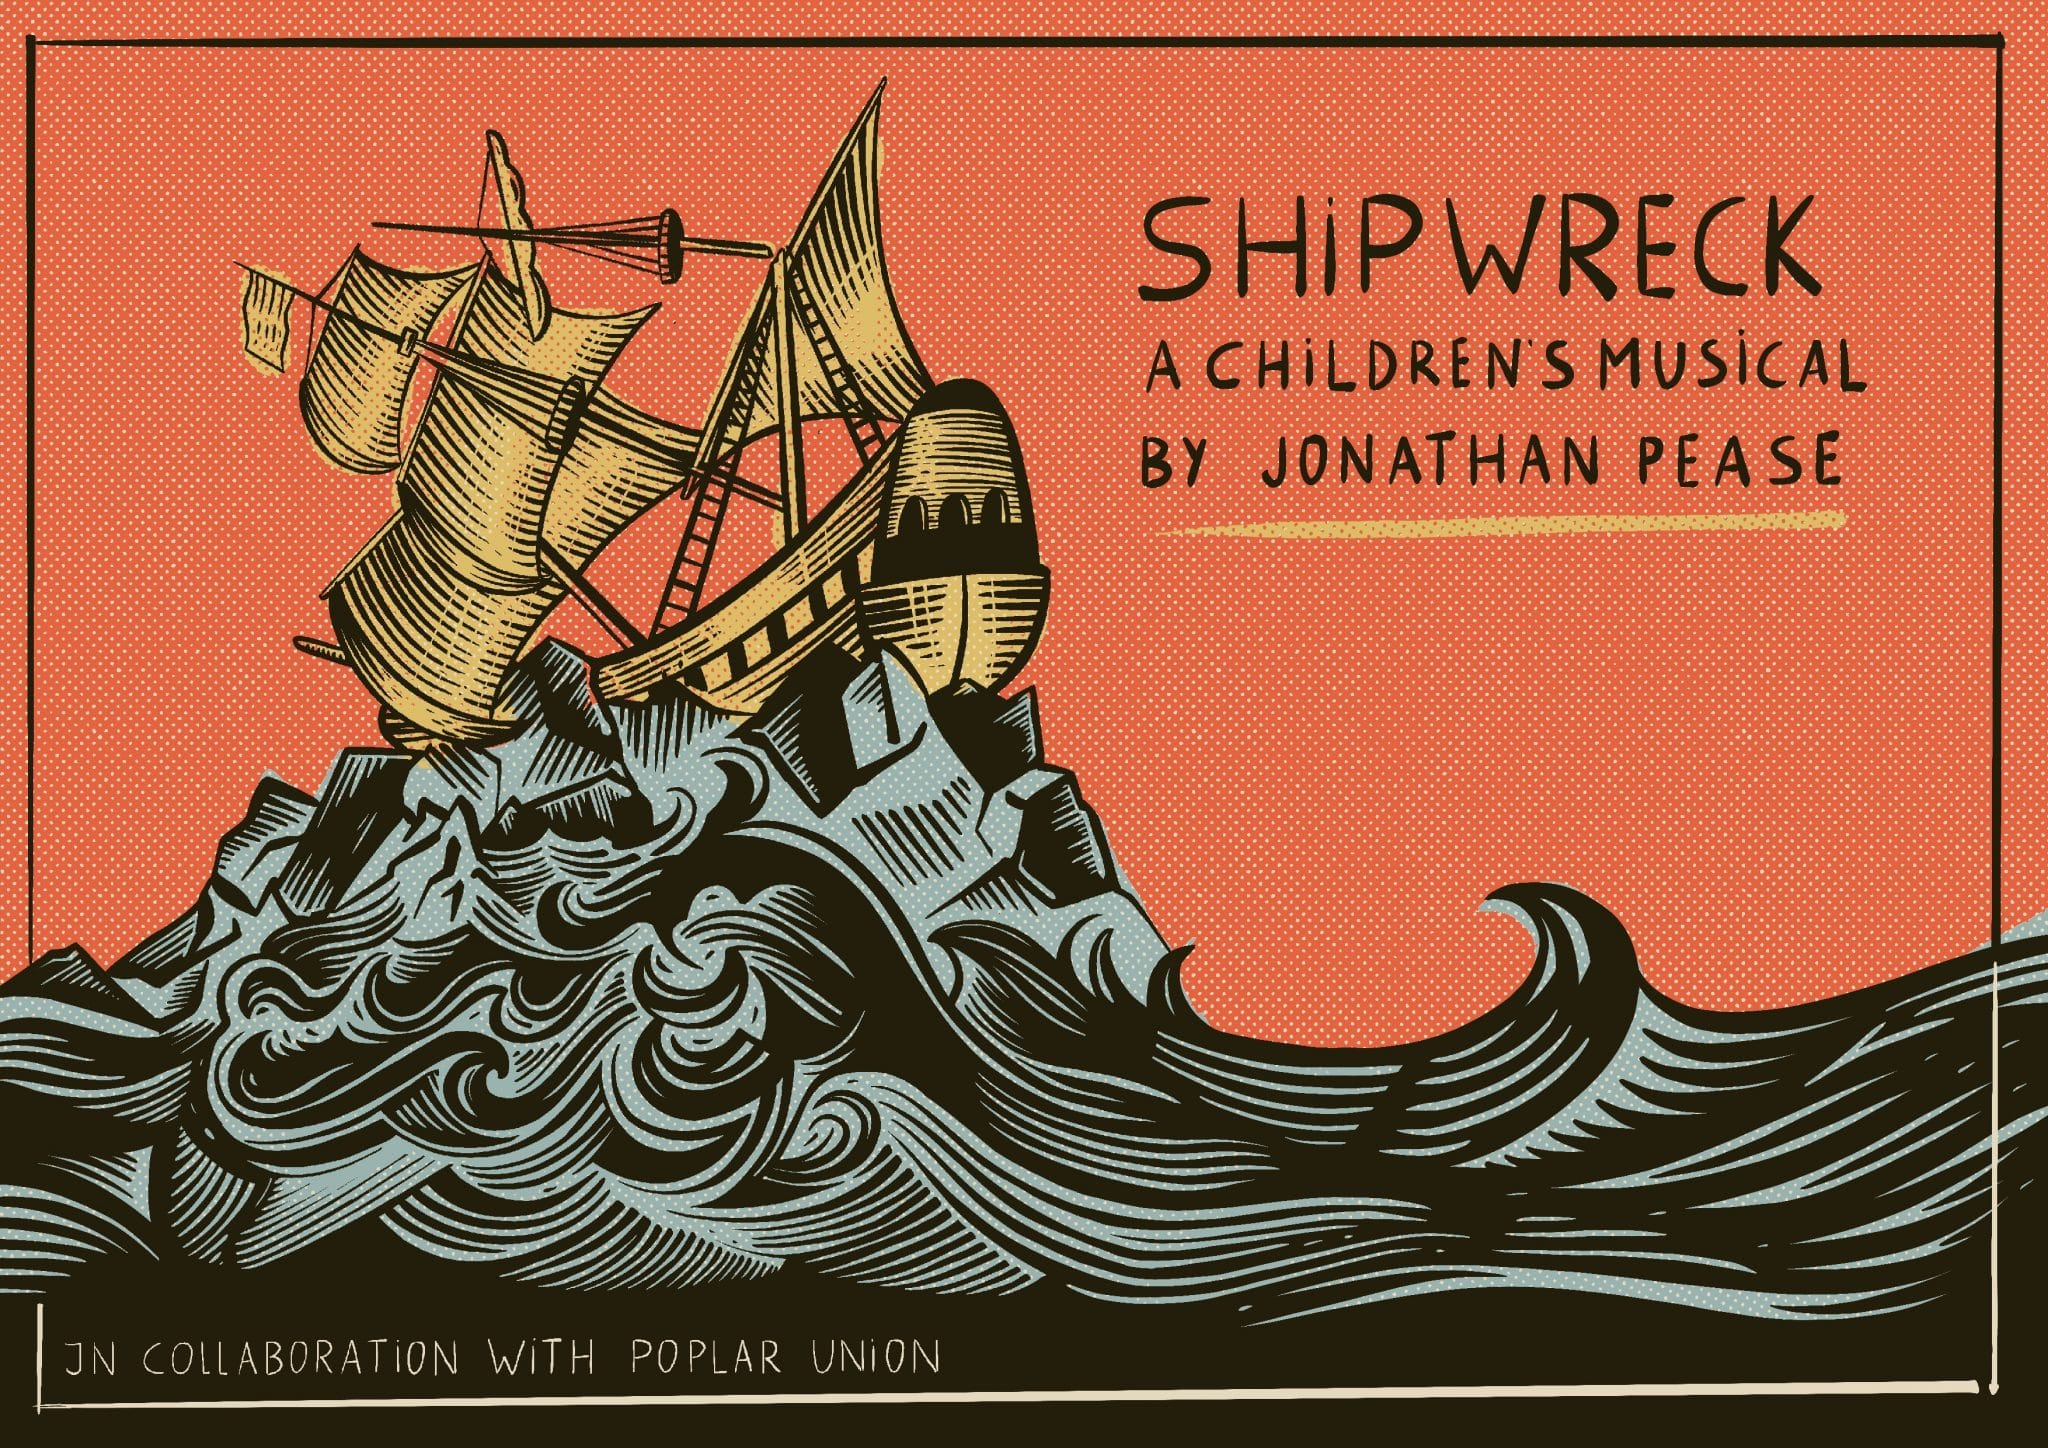 Shipwreck, online choir for kids, poplar union, Jonathan pease, kids musical, music resource for schools, east London, a children's musical, things to do with the kids in lockdown